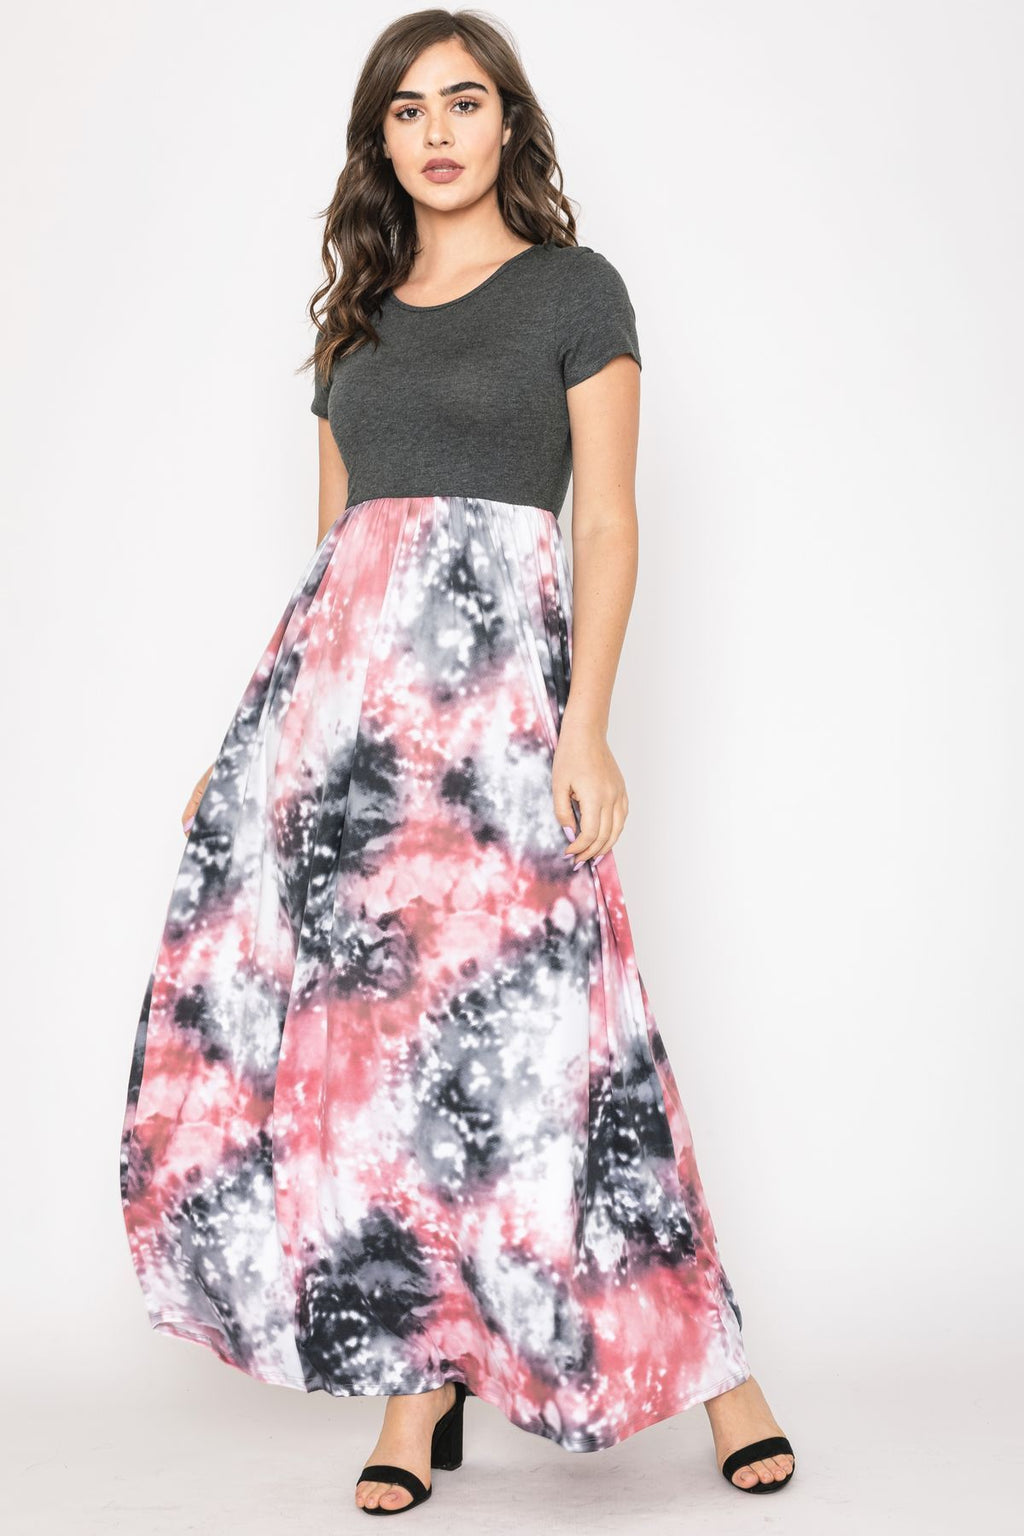 Charcoal Short Sleeve Galaxy Tie Dye Maxi Dress